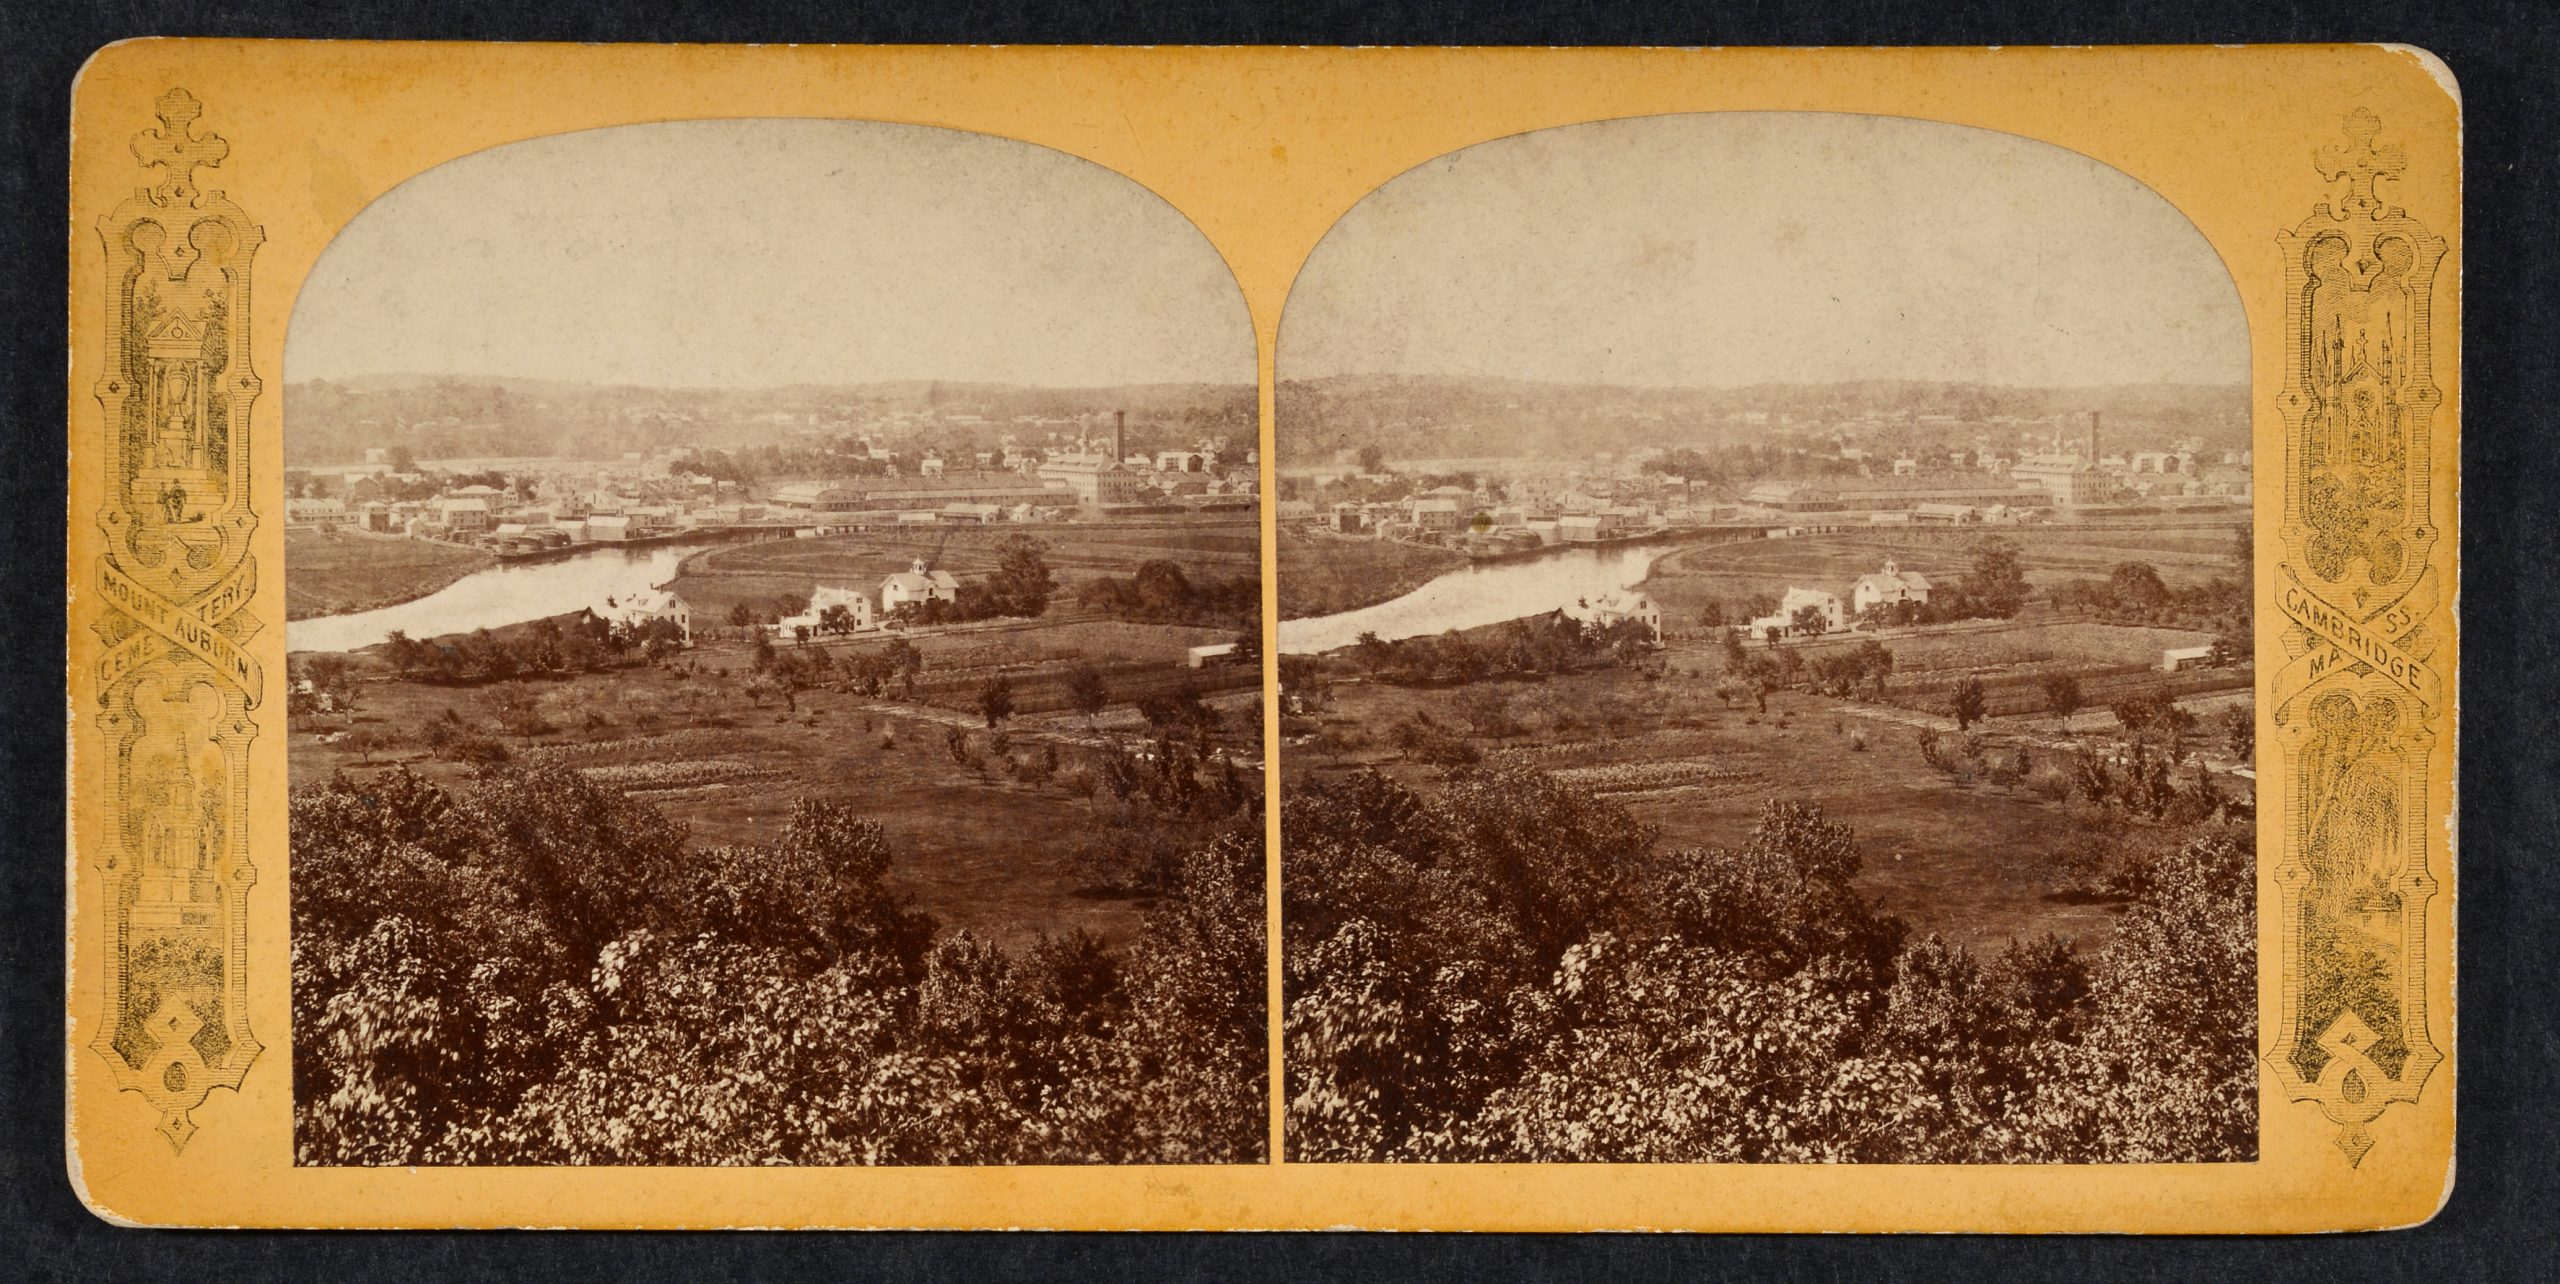 Stereoview of trees, fields, farms, and river with buildings in distance.